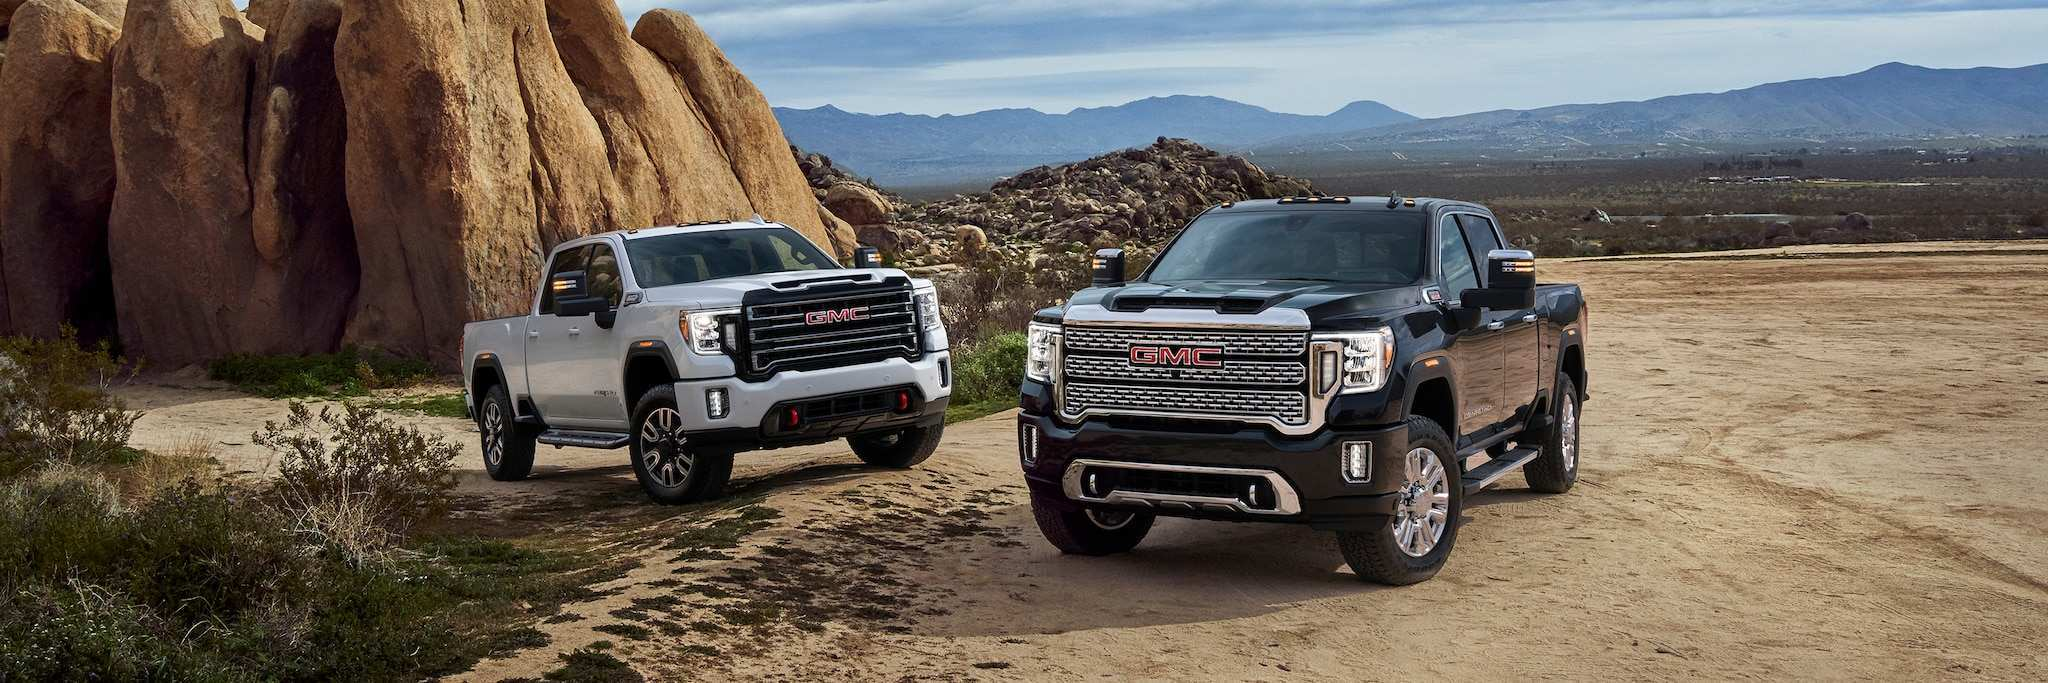 32 All New Gmc Denali 2020 Pictures